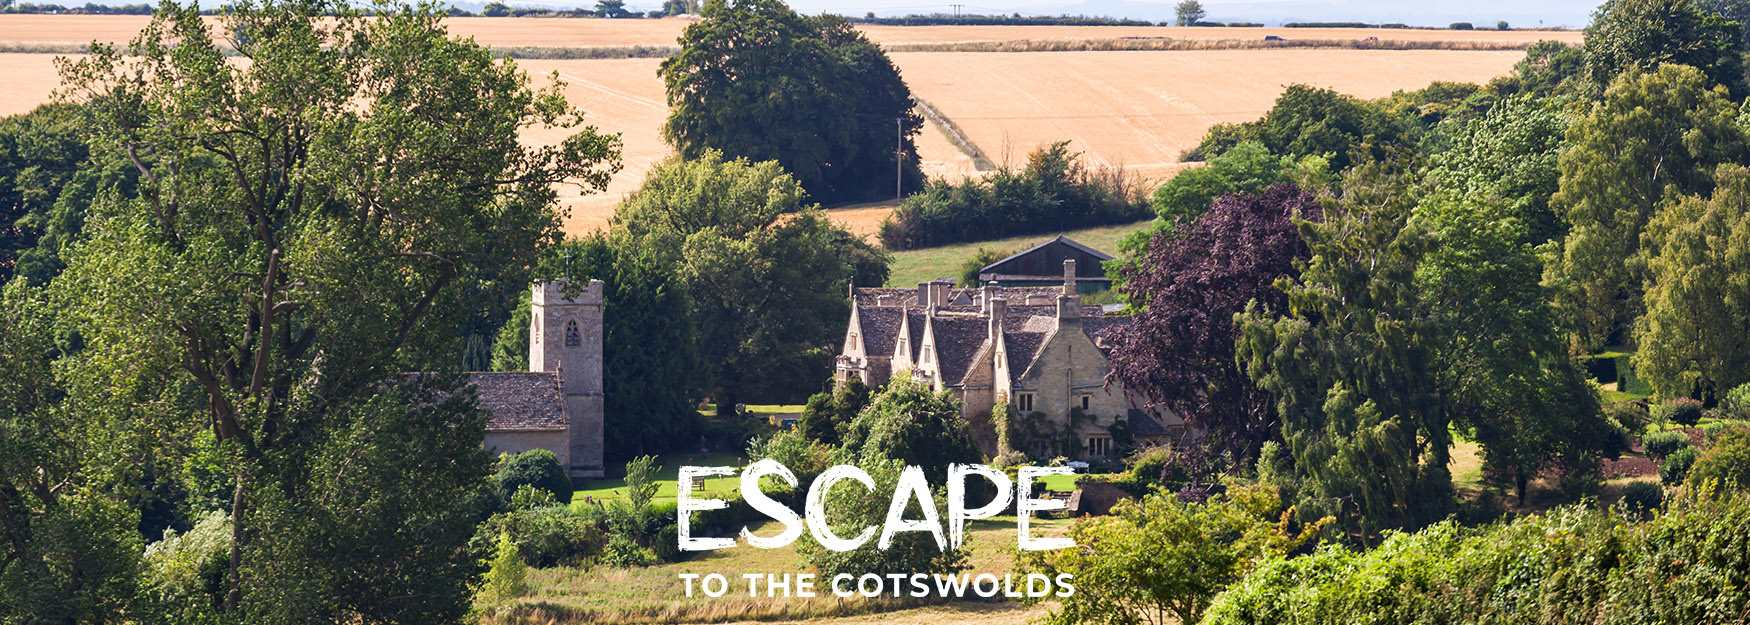 Escape the Everyday, Escape to the Cotswolds